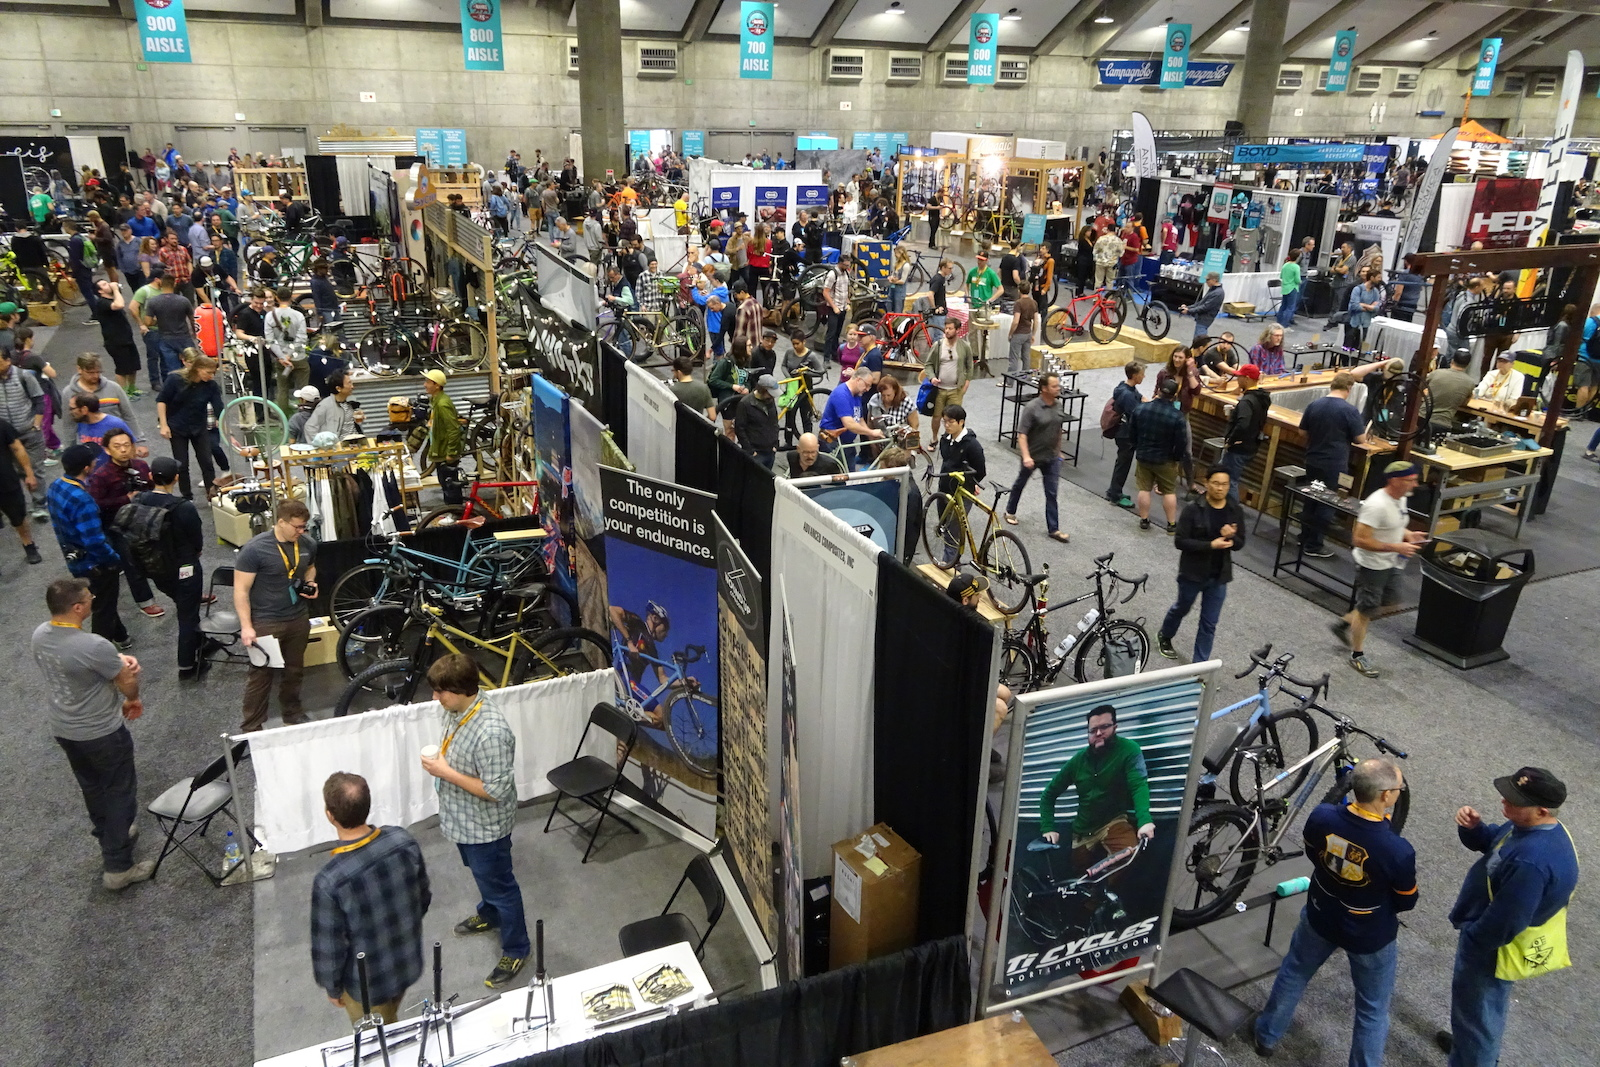 NAHBS 2019 Best crowd best vibe and most exhibitors ever. Happy 15th NAHBS